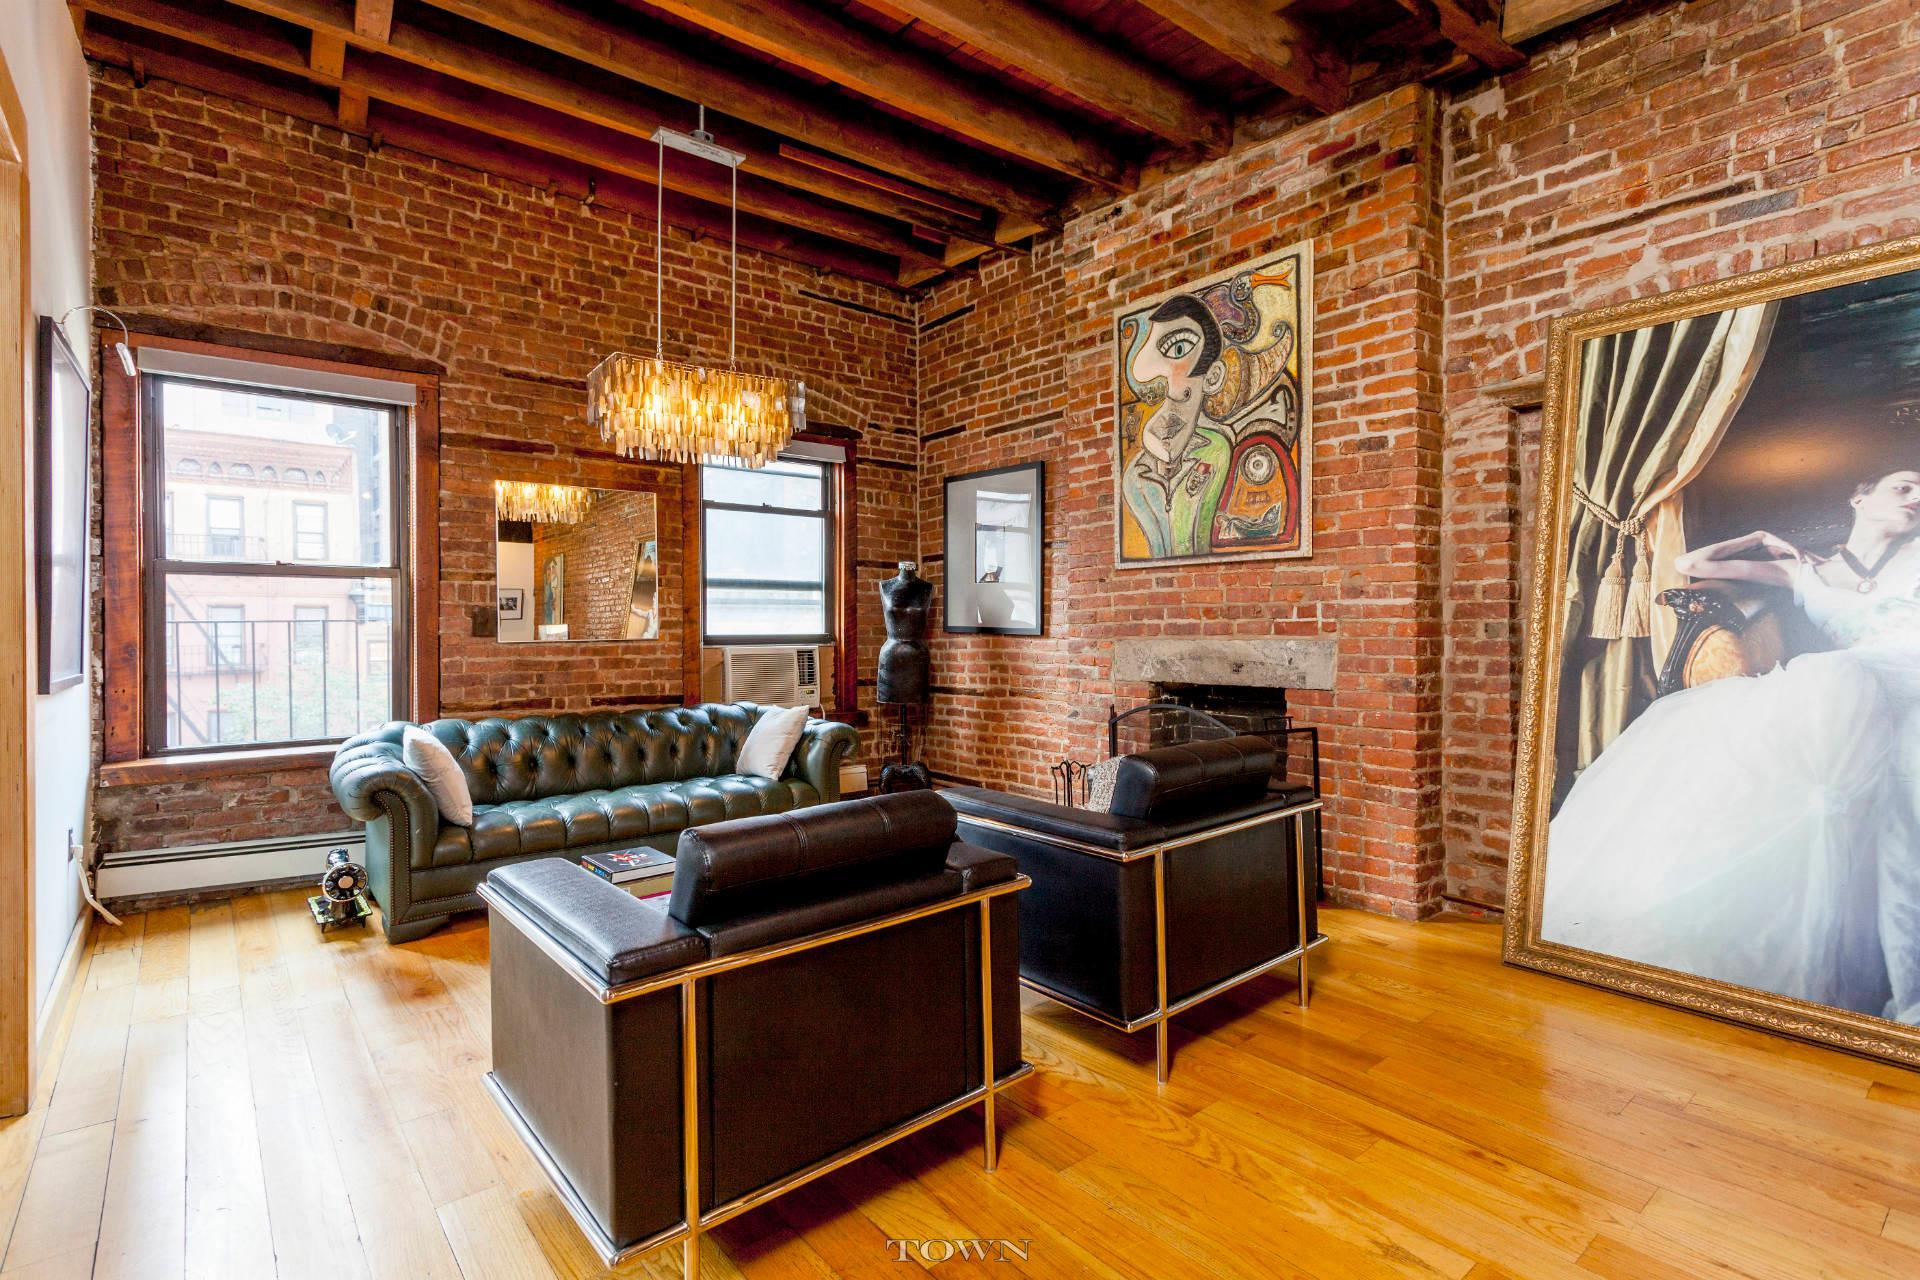 A 32-Foot Long Living Room With Exposed Brick Dominates